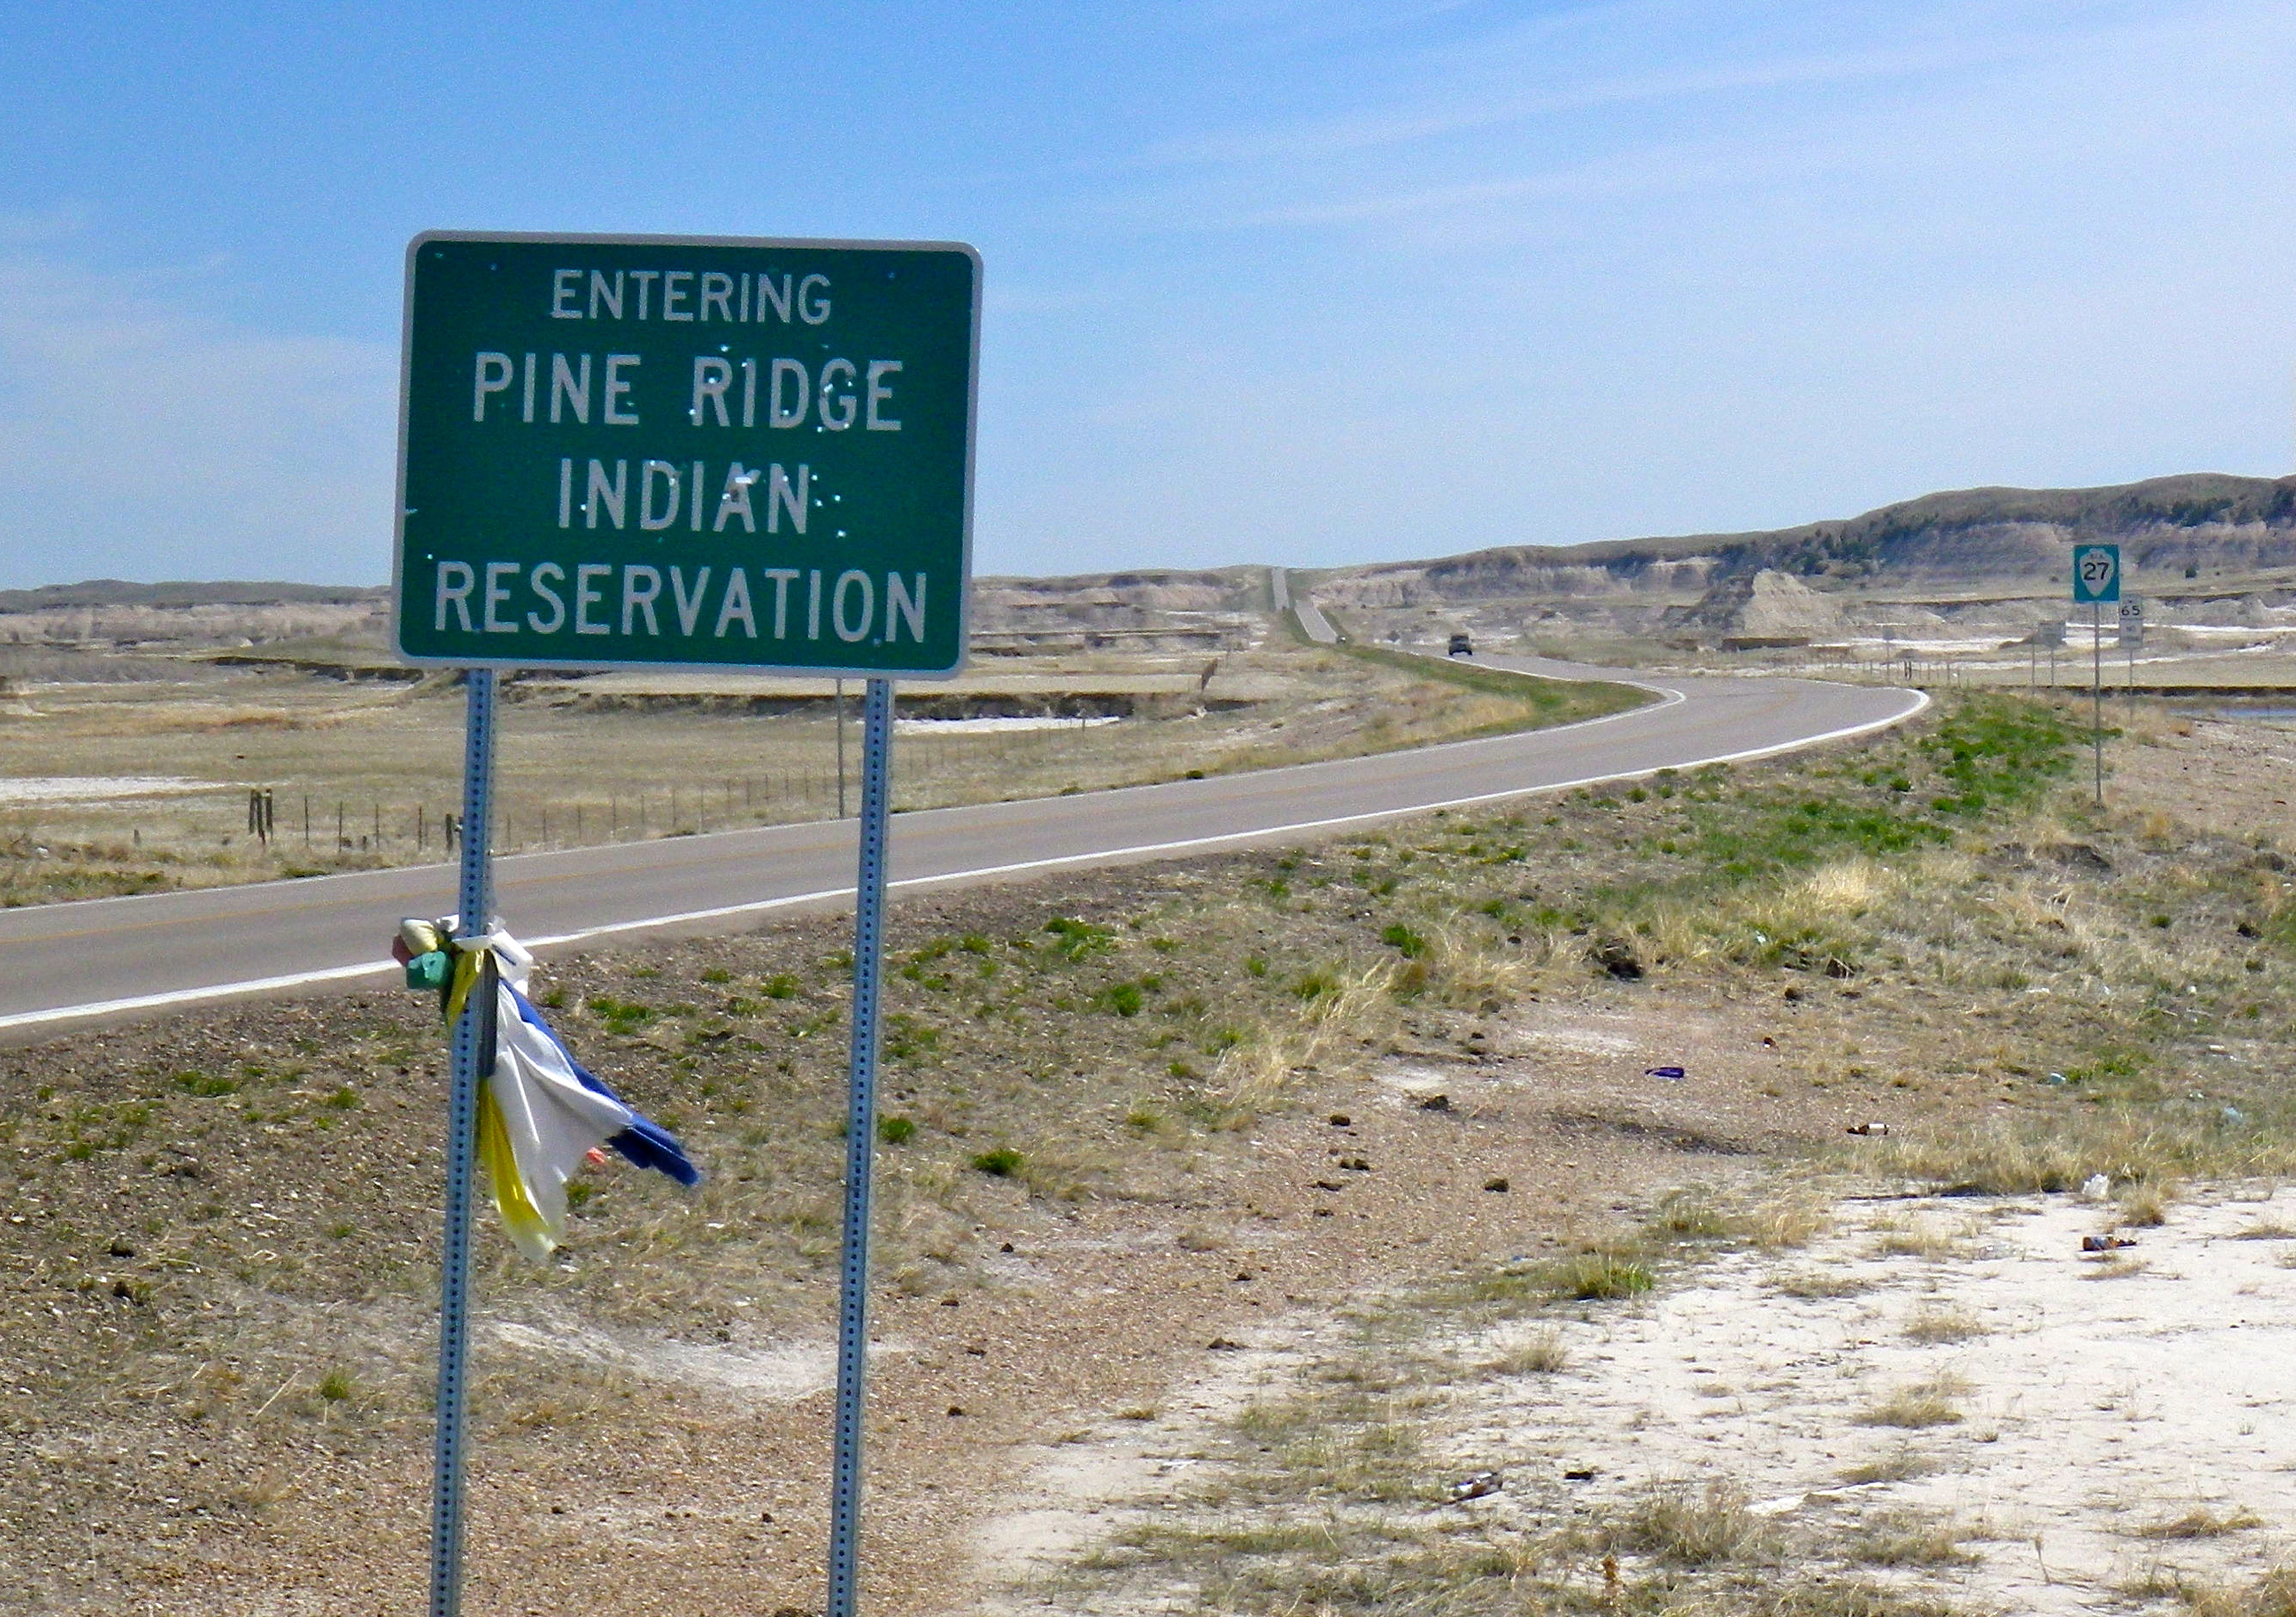 Indian Road Signs >> We're All Living on a Rez: My Week on Pine Ridge Indian Reservation – Urban-Shamanism.org